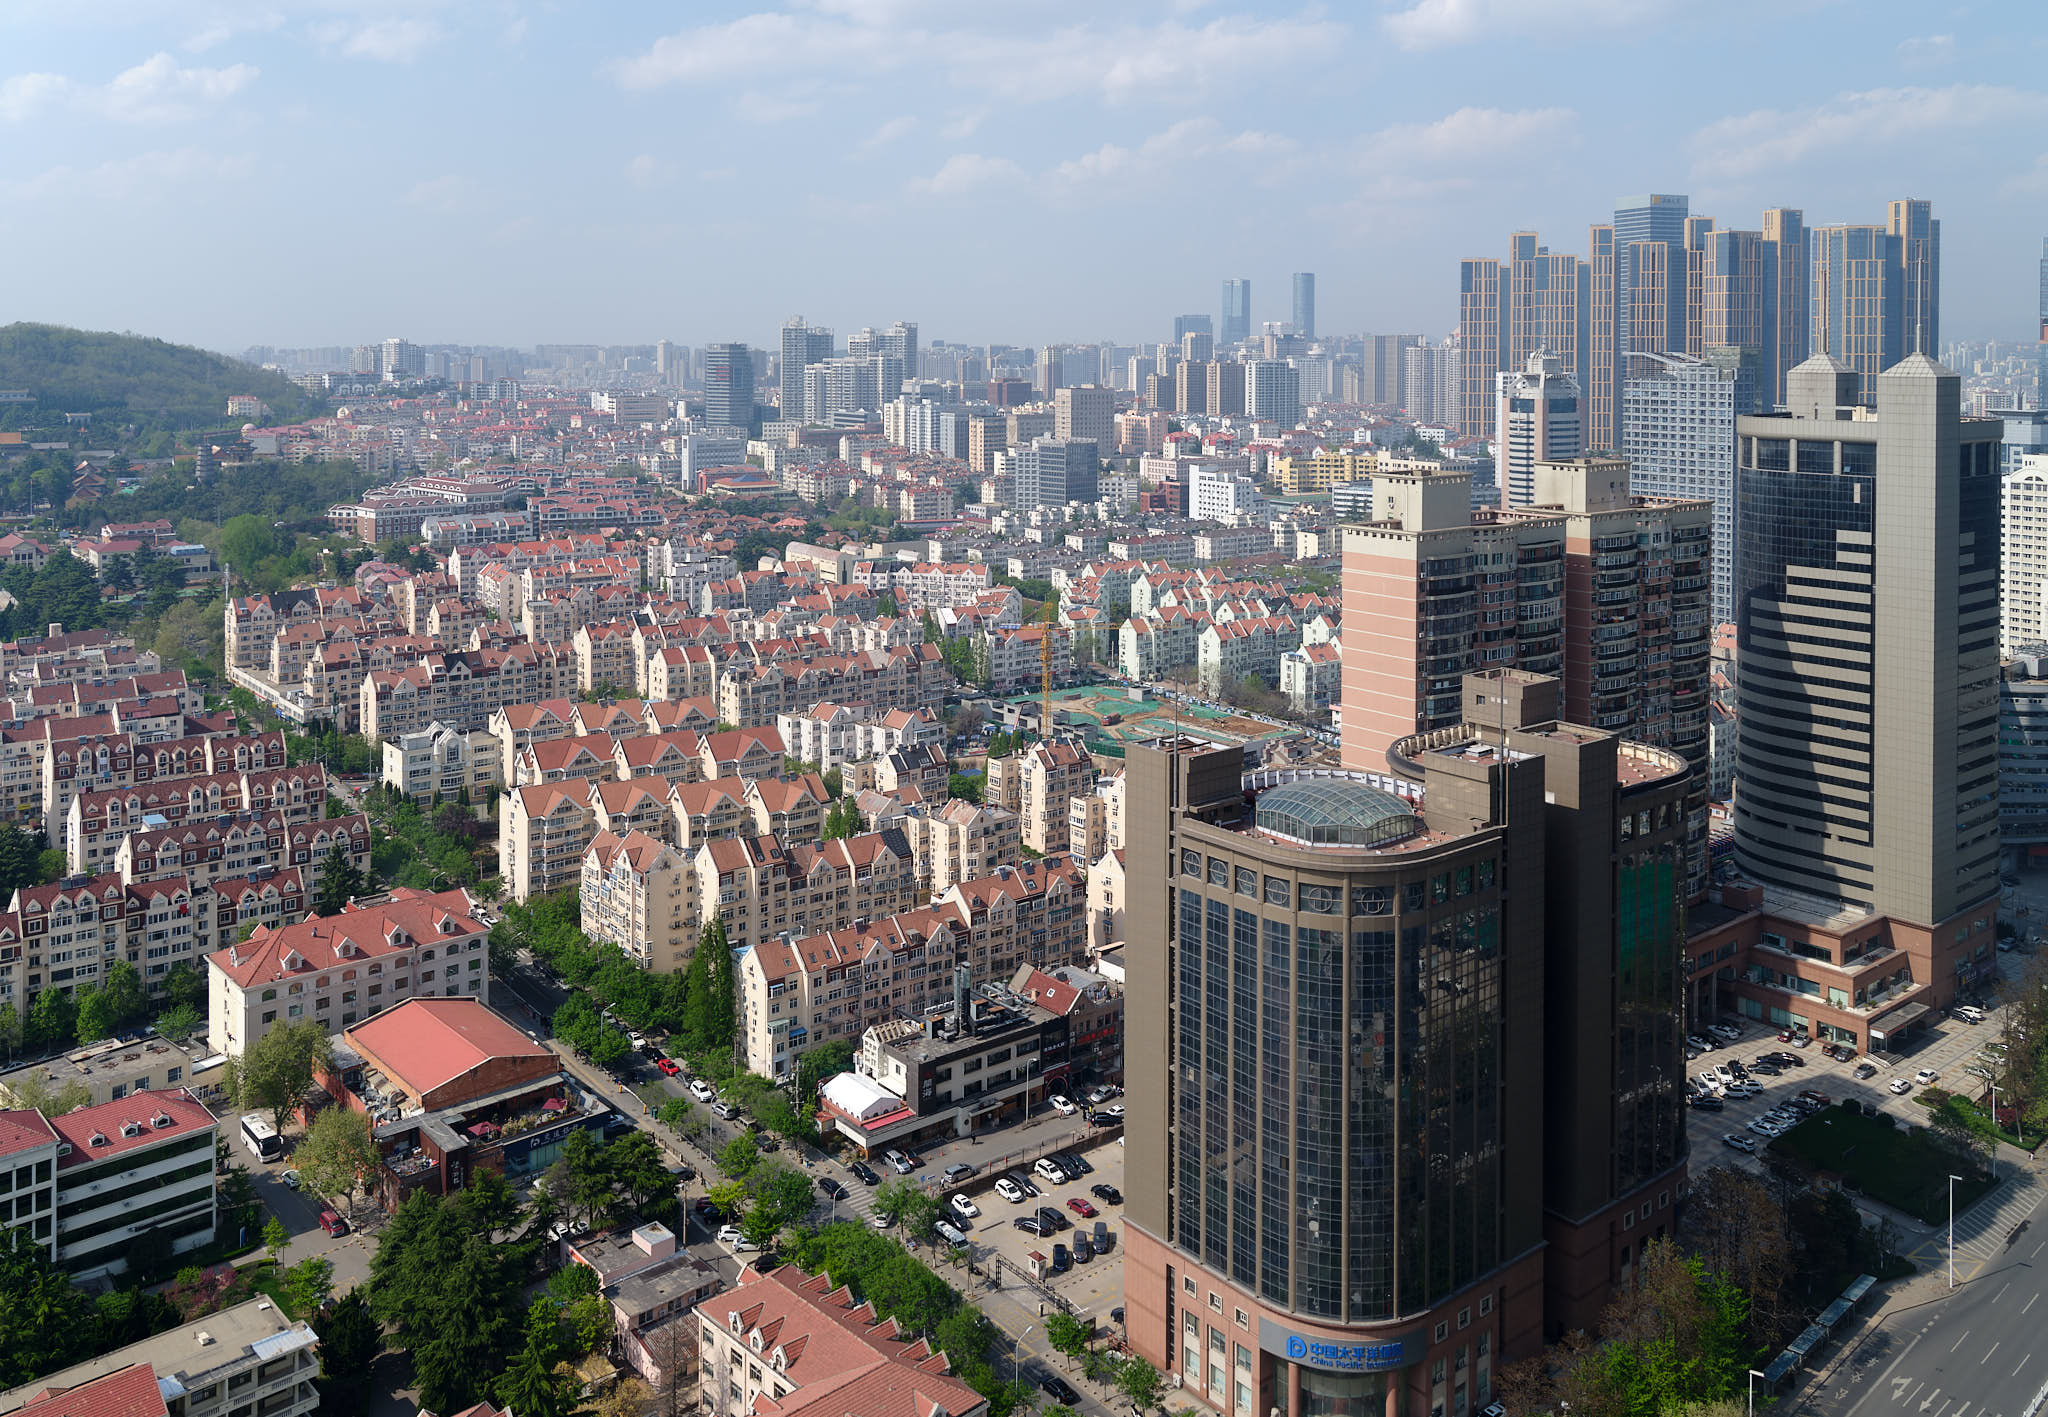 View from Haitian Hotel executive lounge of Qingdao buildings